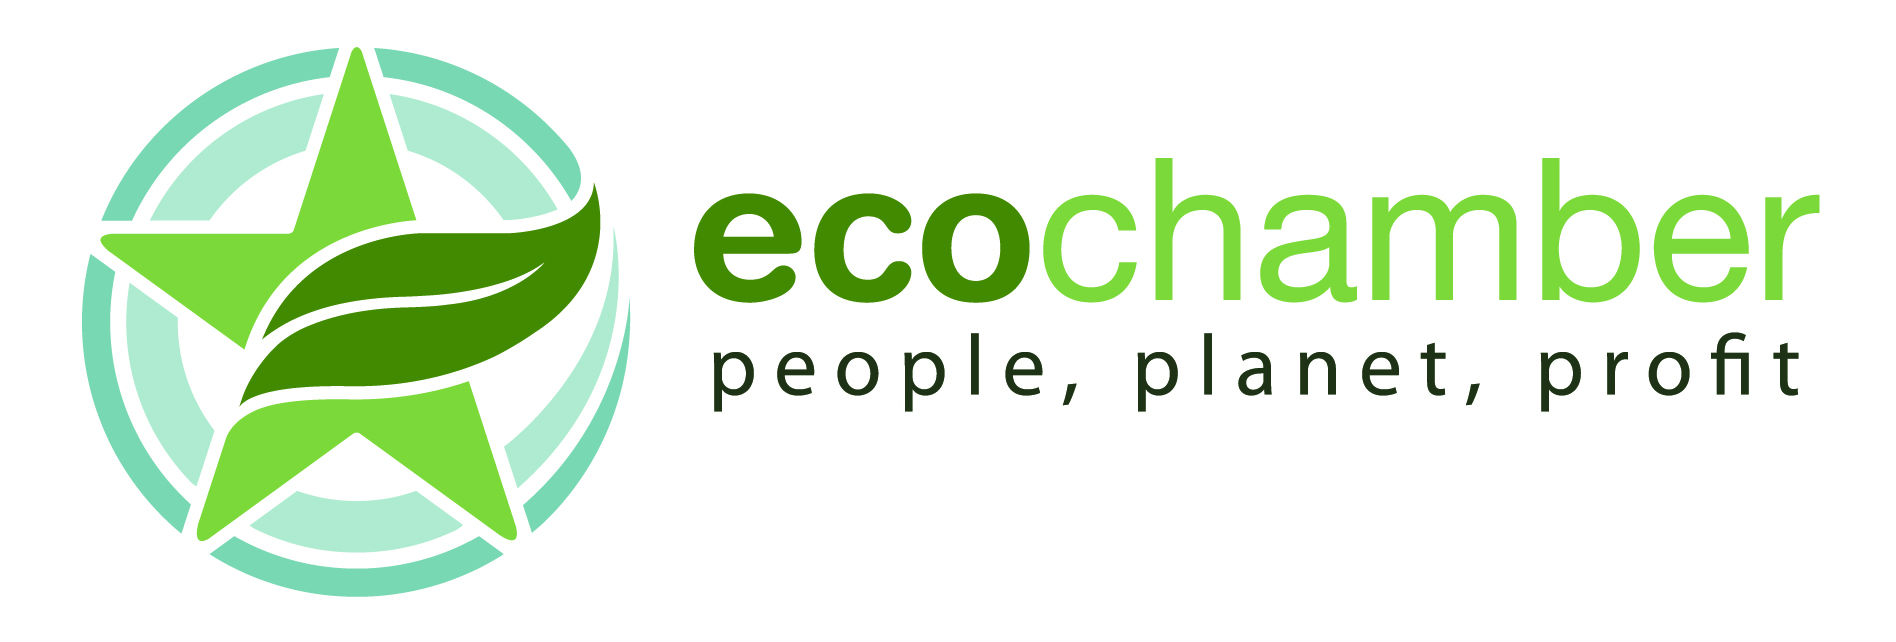 EcoChamber Member: The Global Green Chamber of Commerce